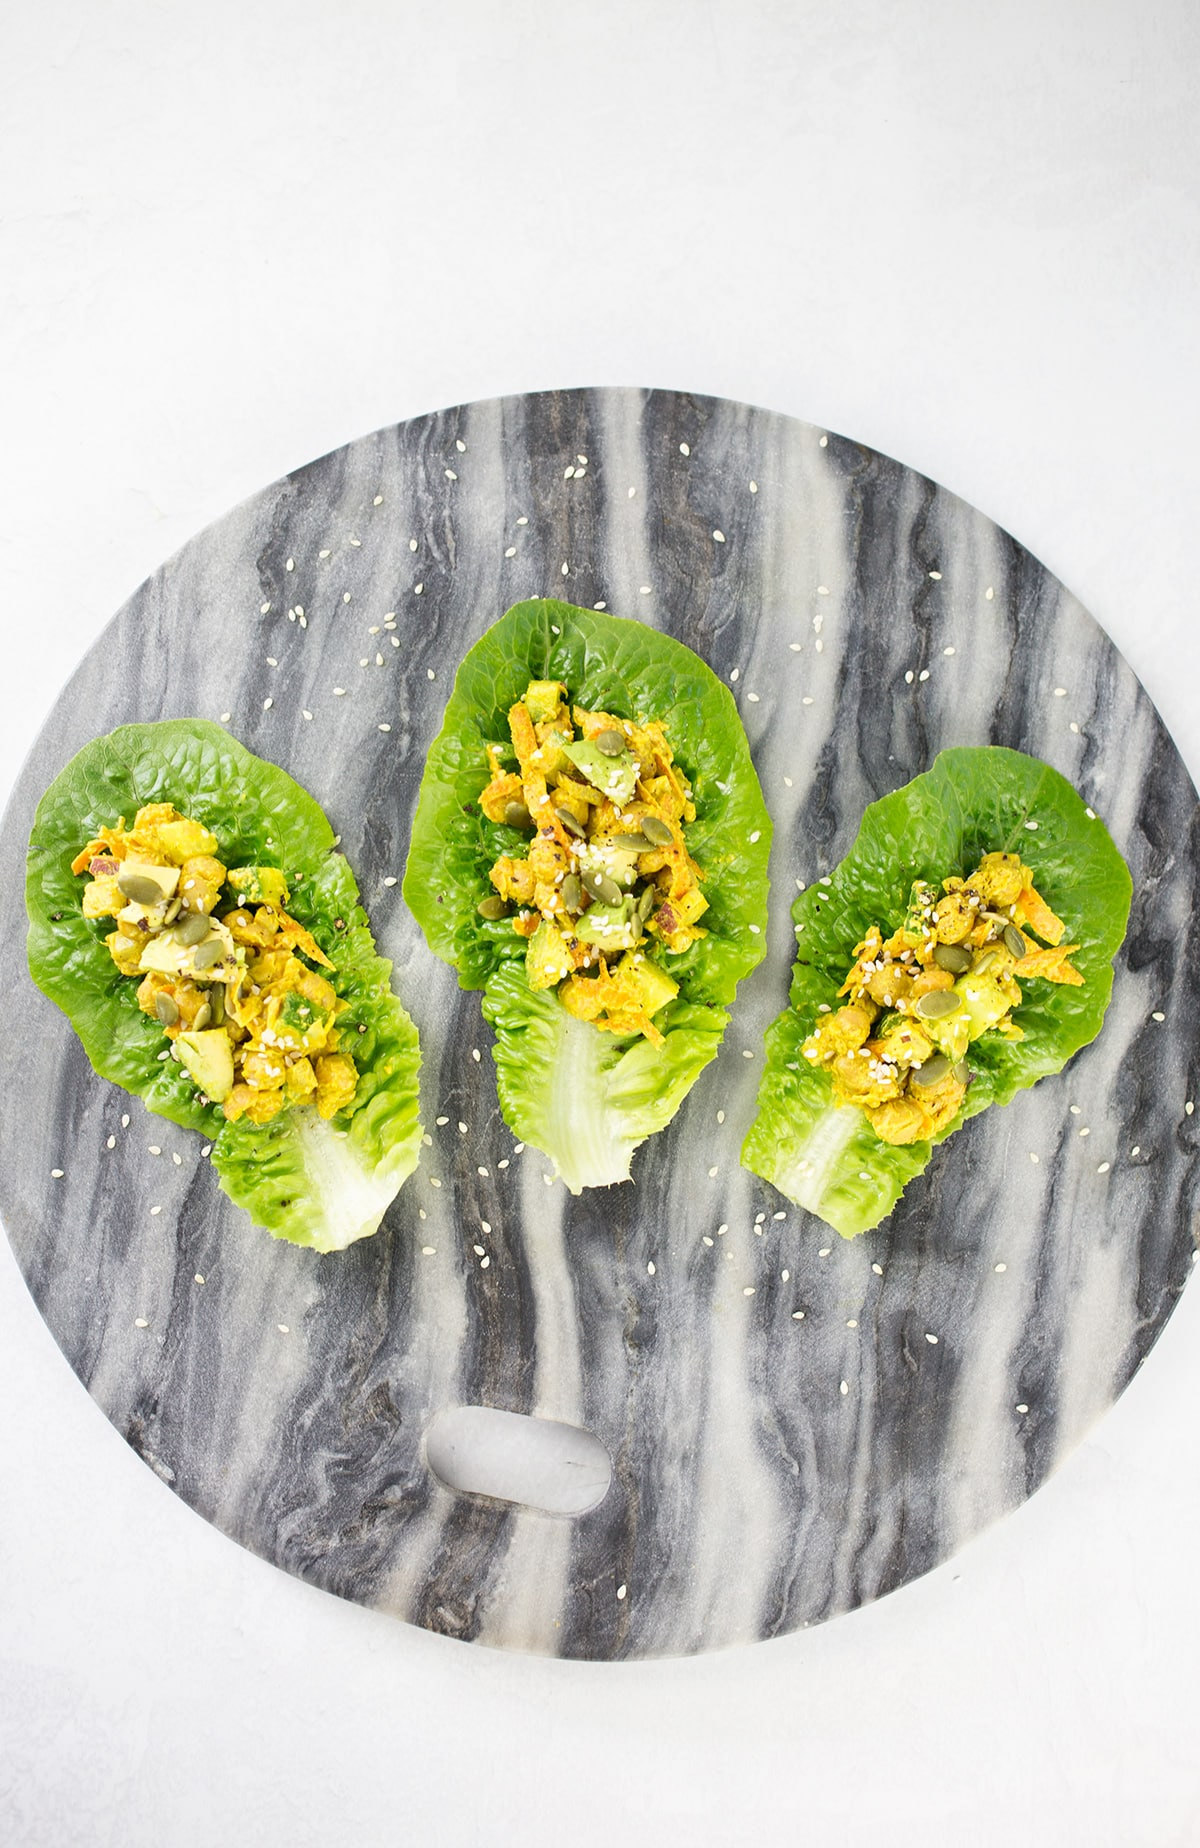 Birdseye View of Curry Chickpea Lettuce Wraps on marble platter. 3 lettuce wraps.